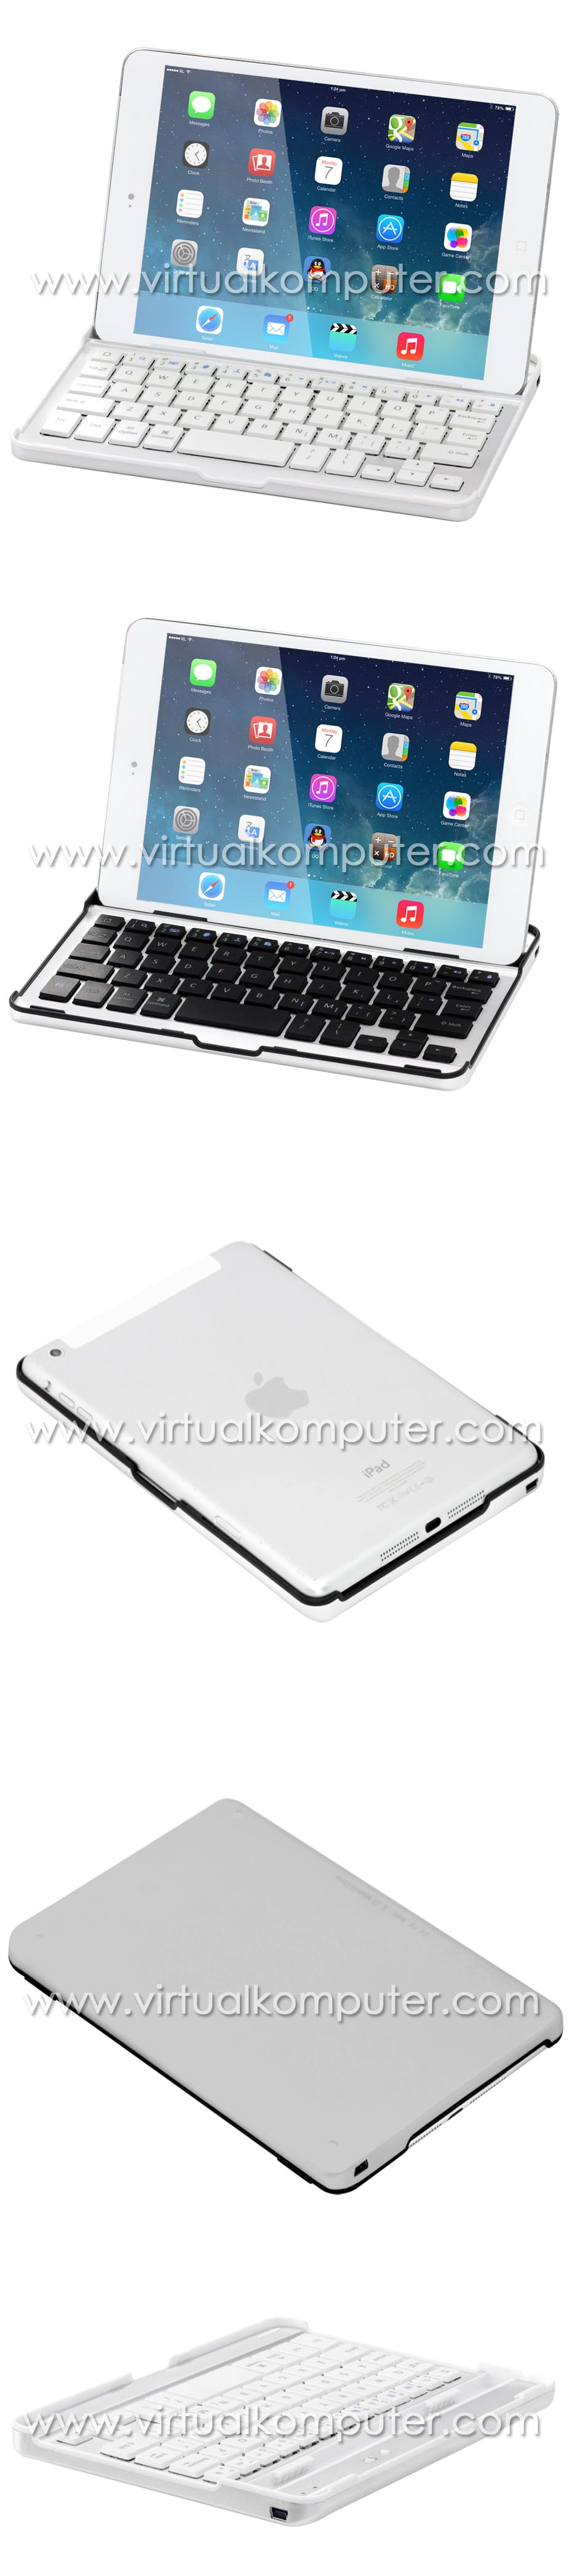 Ultra Slim Keyboard for iPad Mini Overview